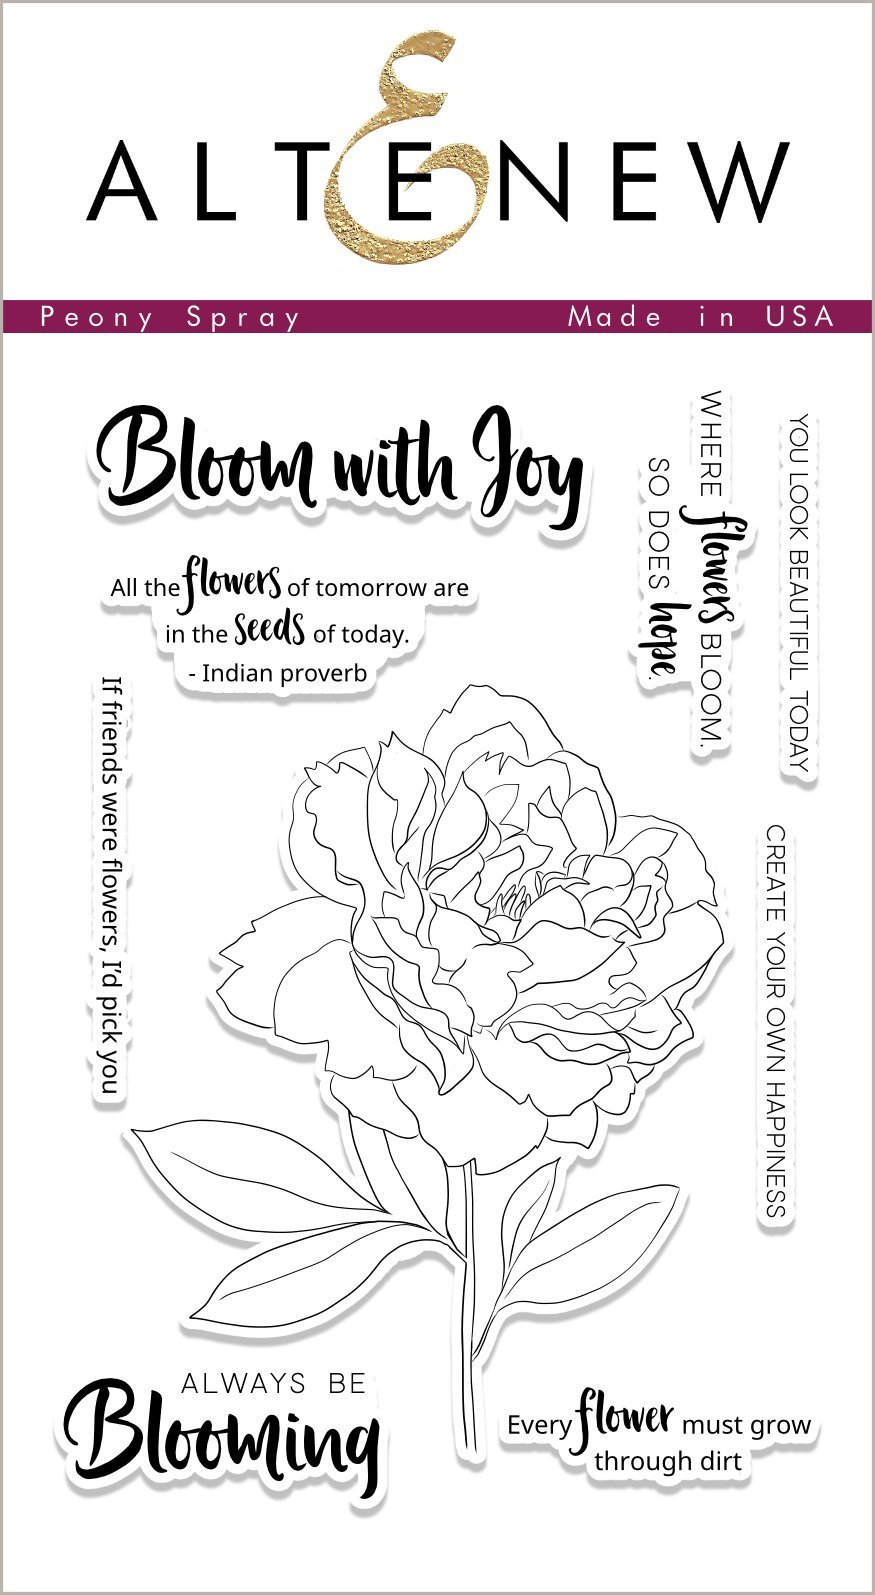 *NEW* - Altenew - Peony Spray Stamp Set